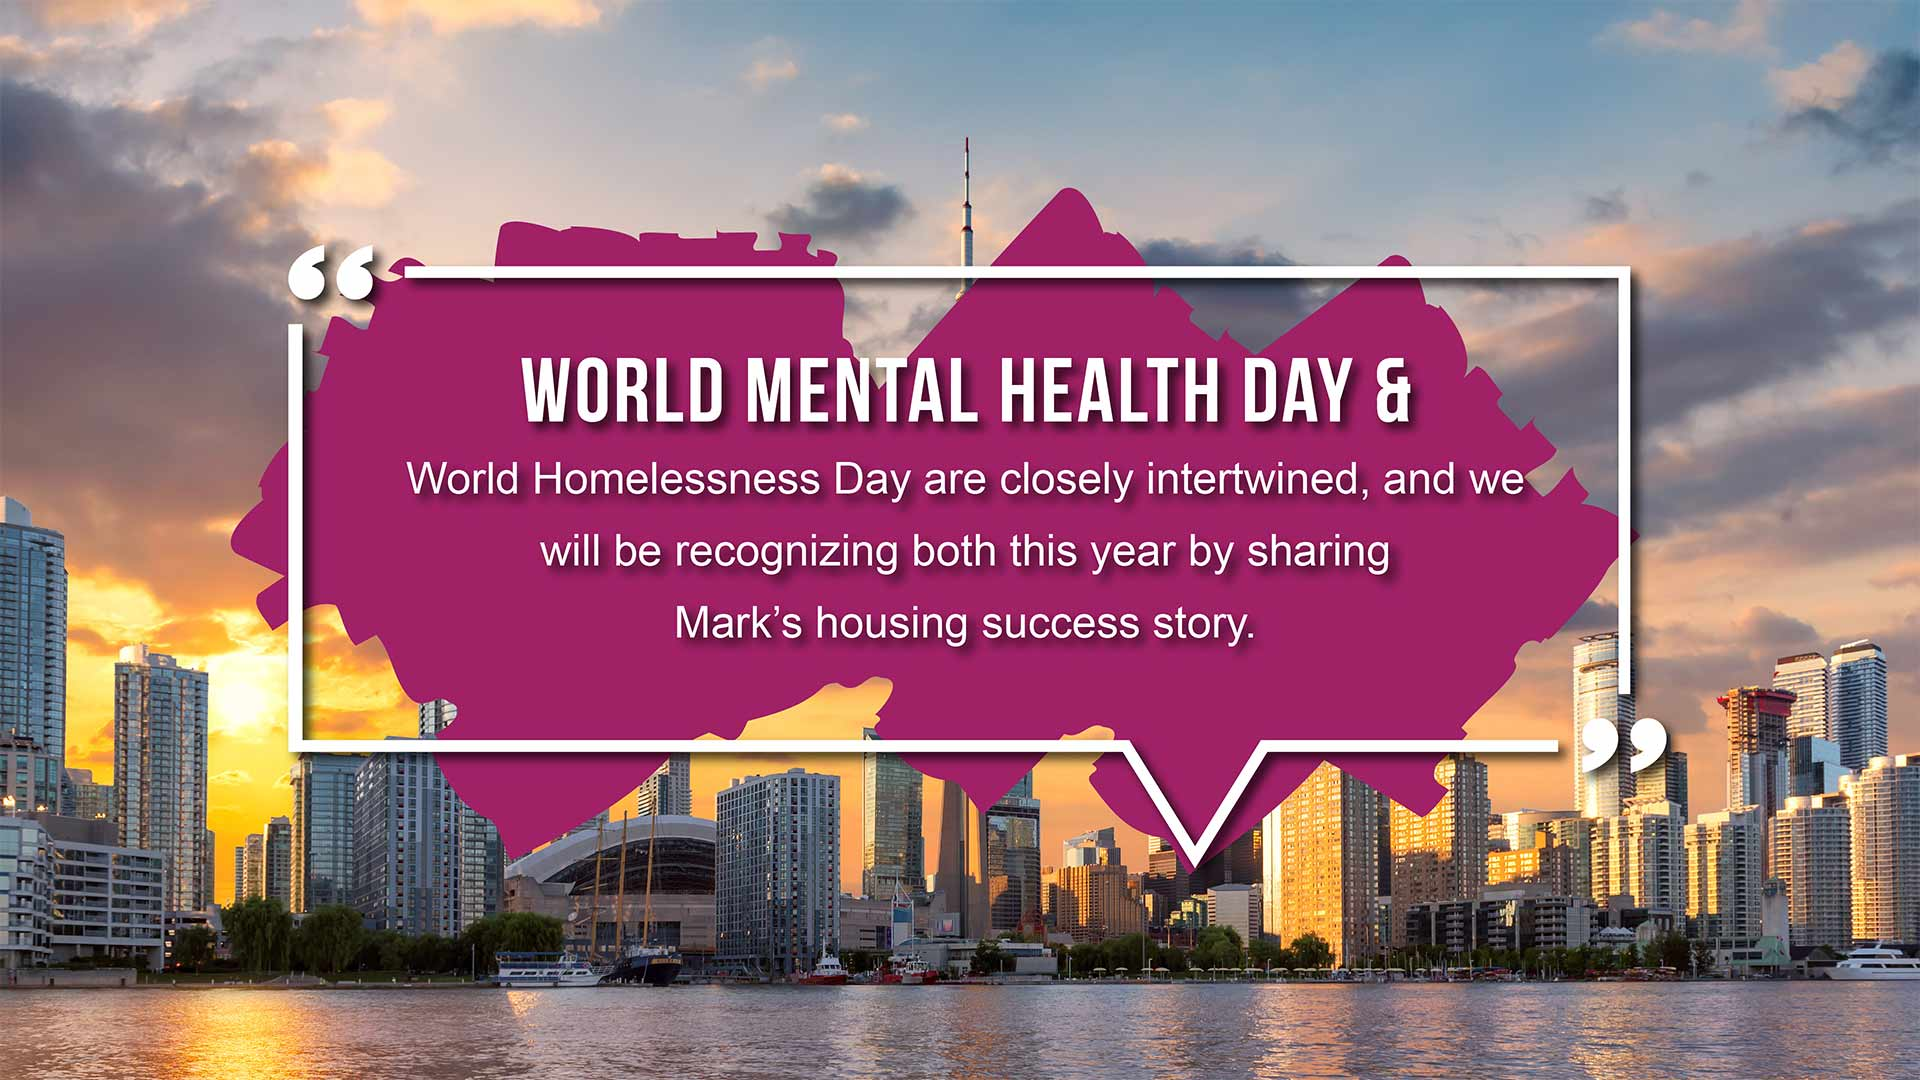 World Mental Health Day and World Homelessness Day are closely intertwined, and we will be recognizing both this year by sharing Mark's housing success story